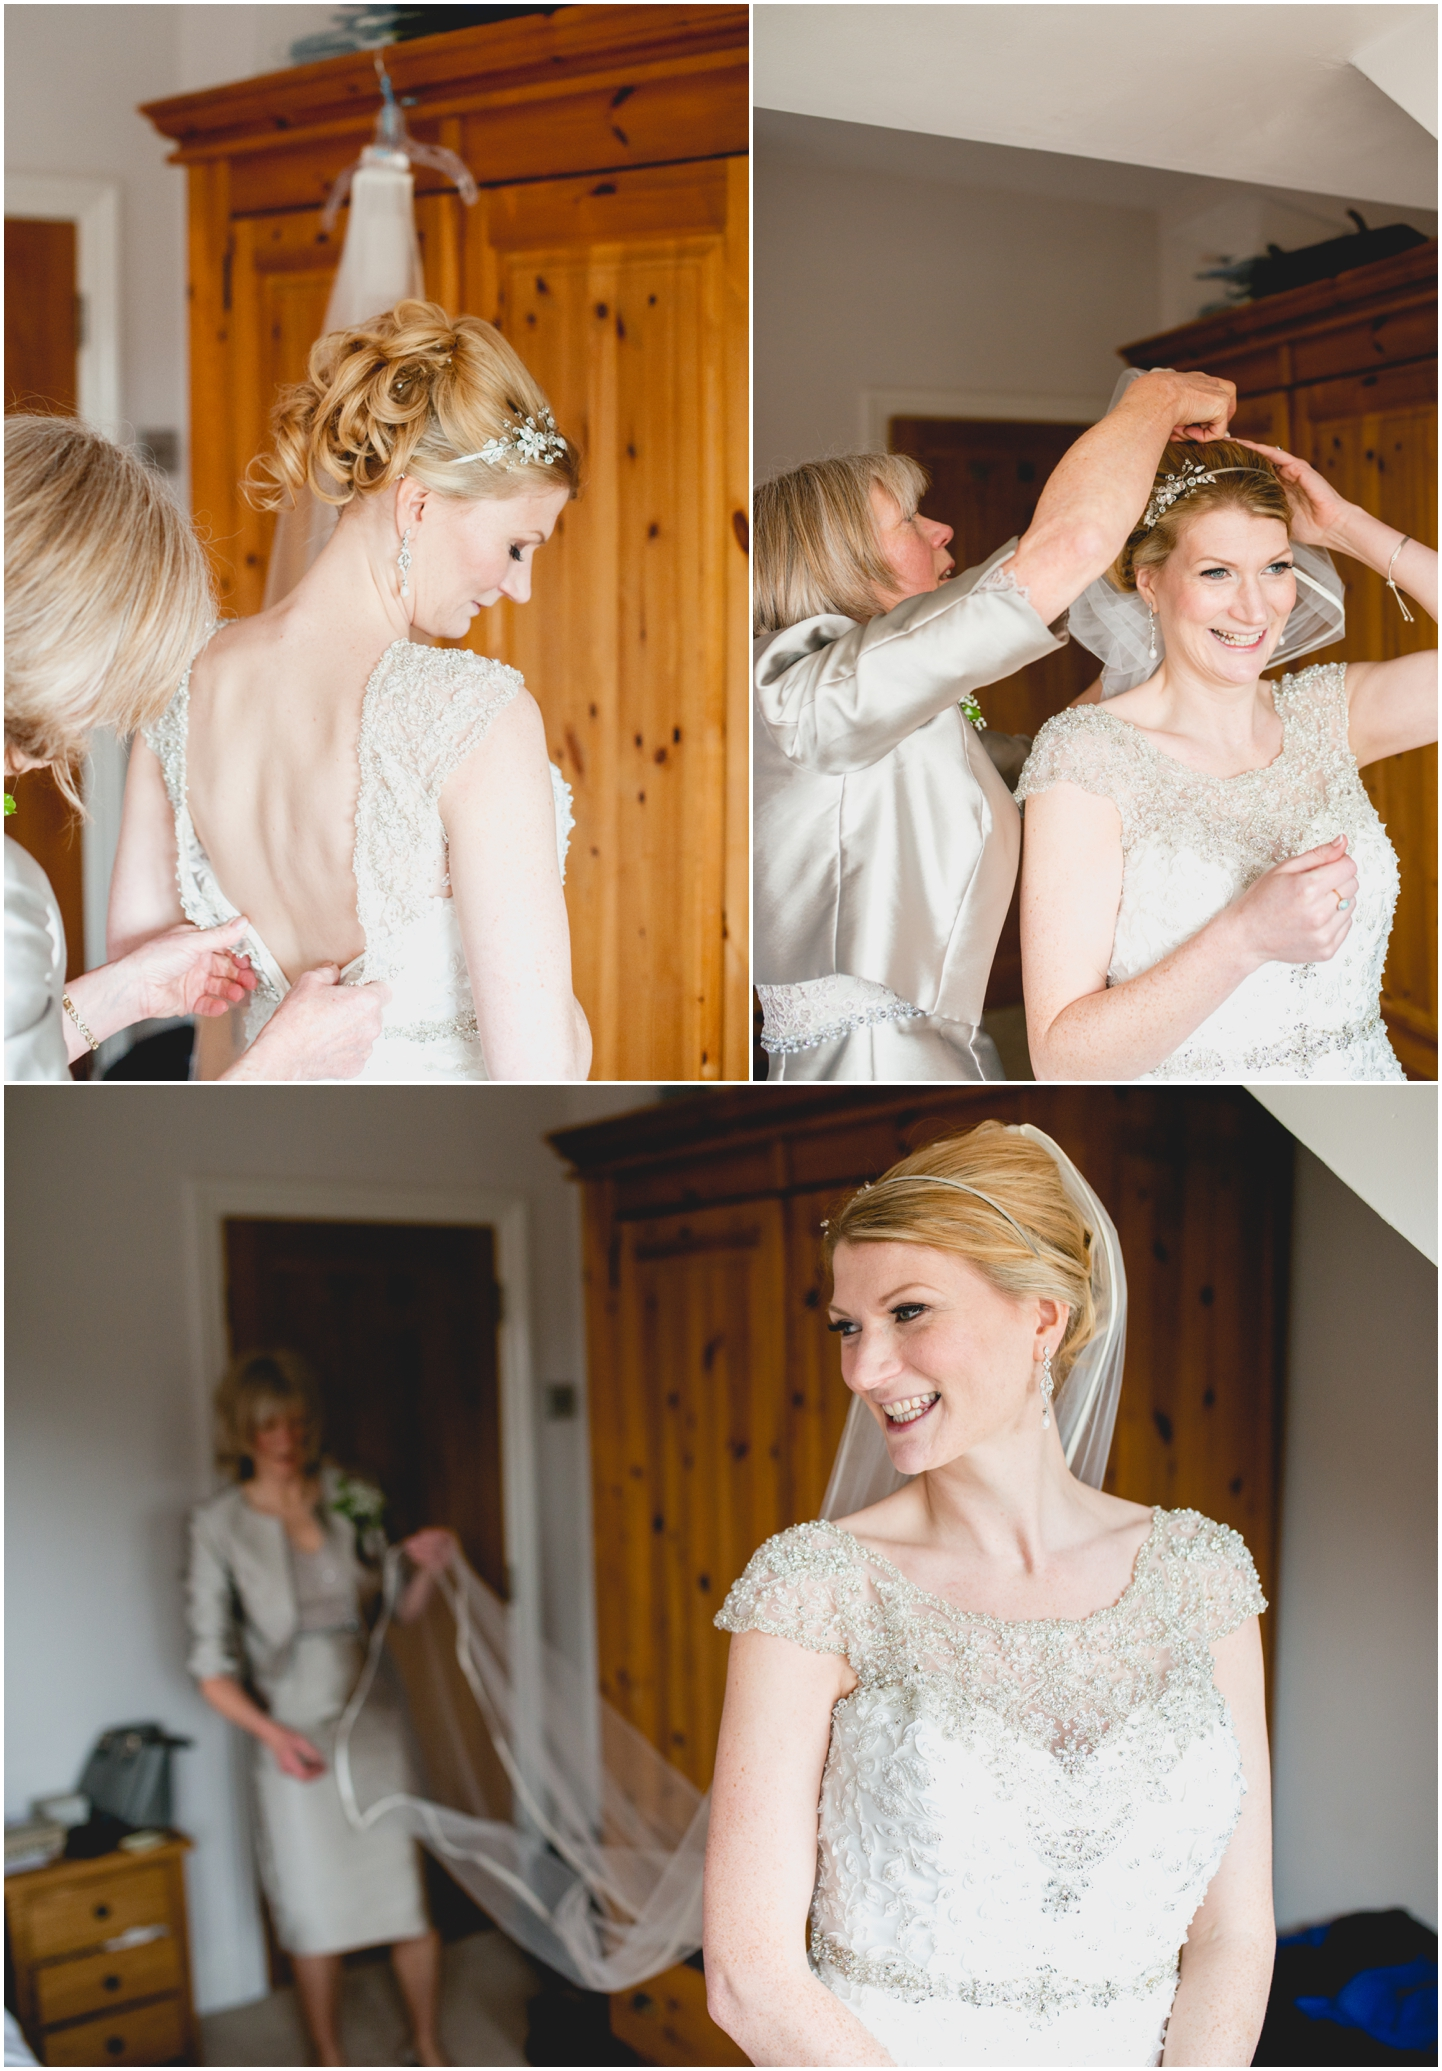 Pendrell Hall Wedding Photography by Lisa Carpenter Photography, West Midlands photographer, bridal preparations